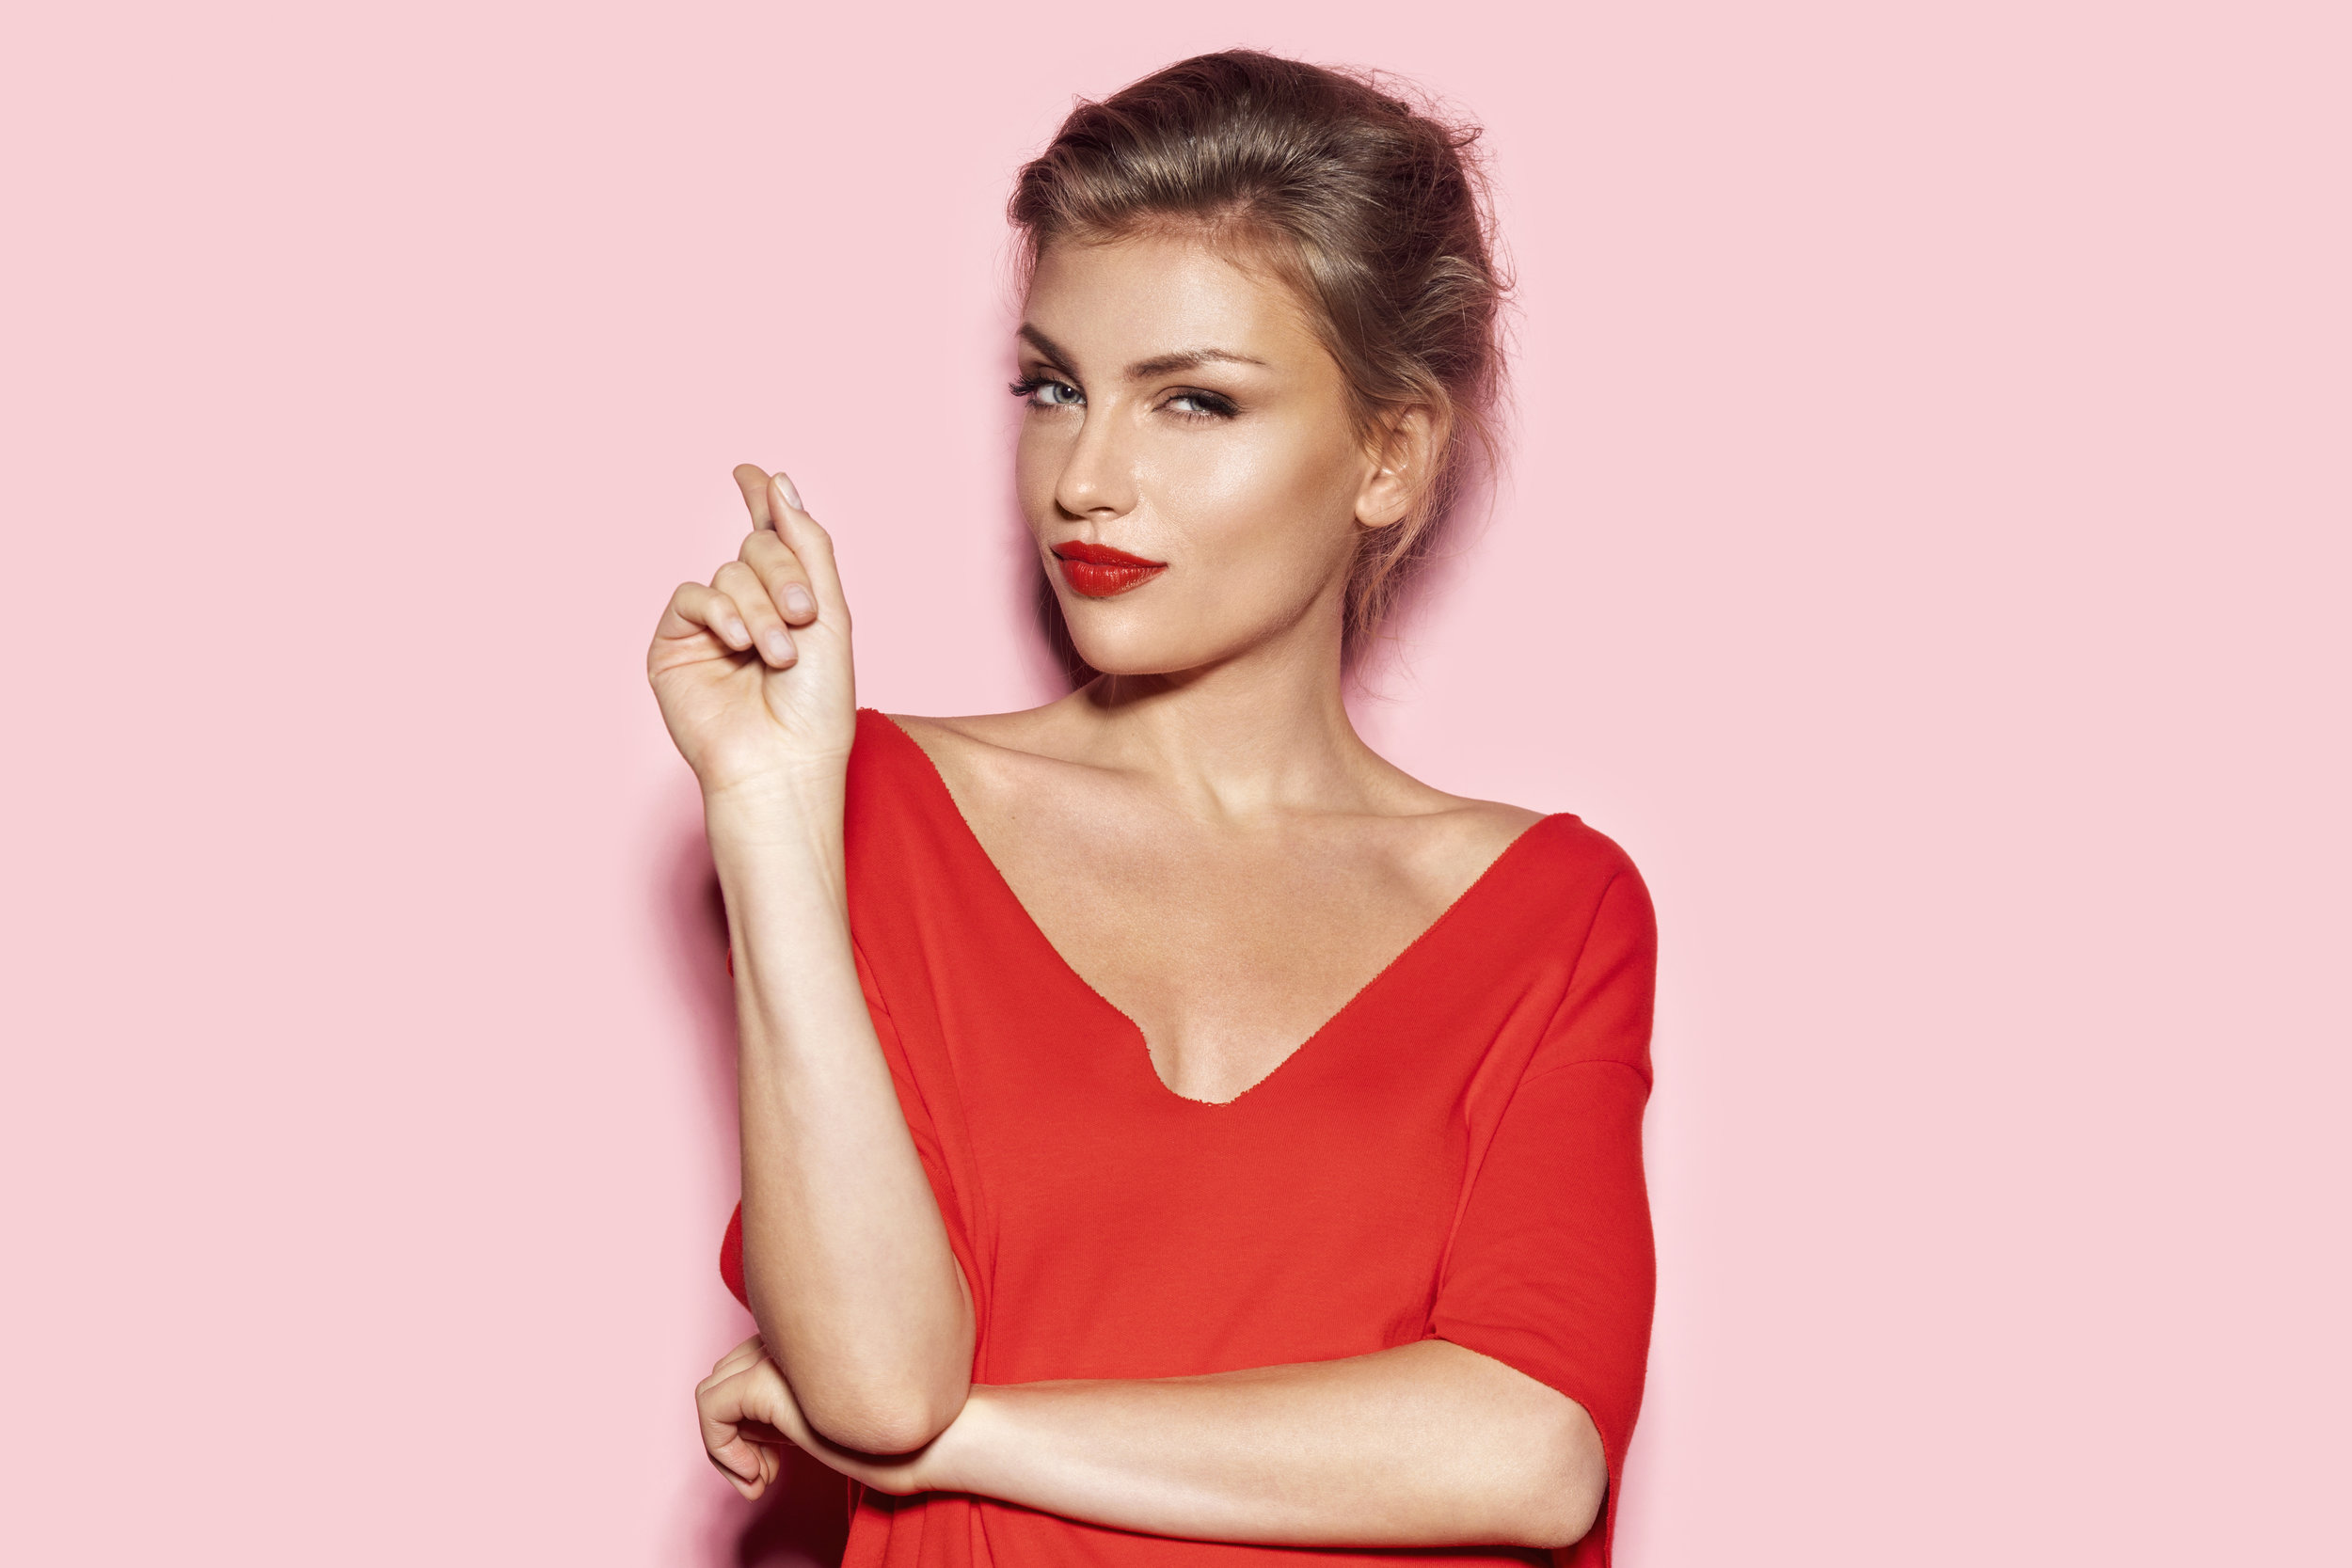 Blonde headed woman with beautiful acne free complexion in red top wearing red lipstick giving the side-eye and casually pointing in a gesture indicating she has this under control.